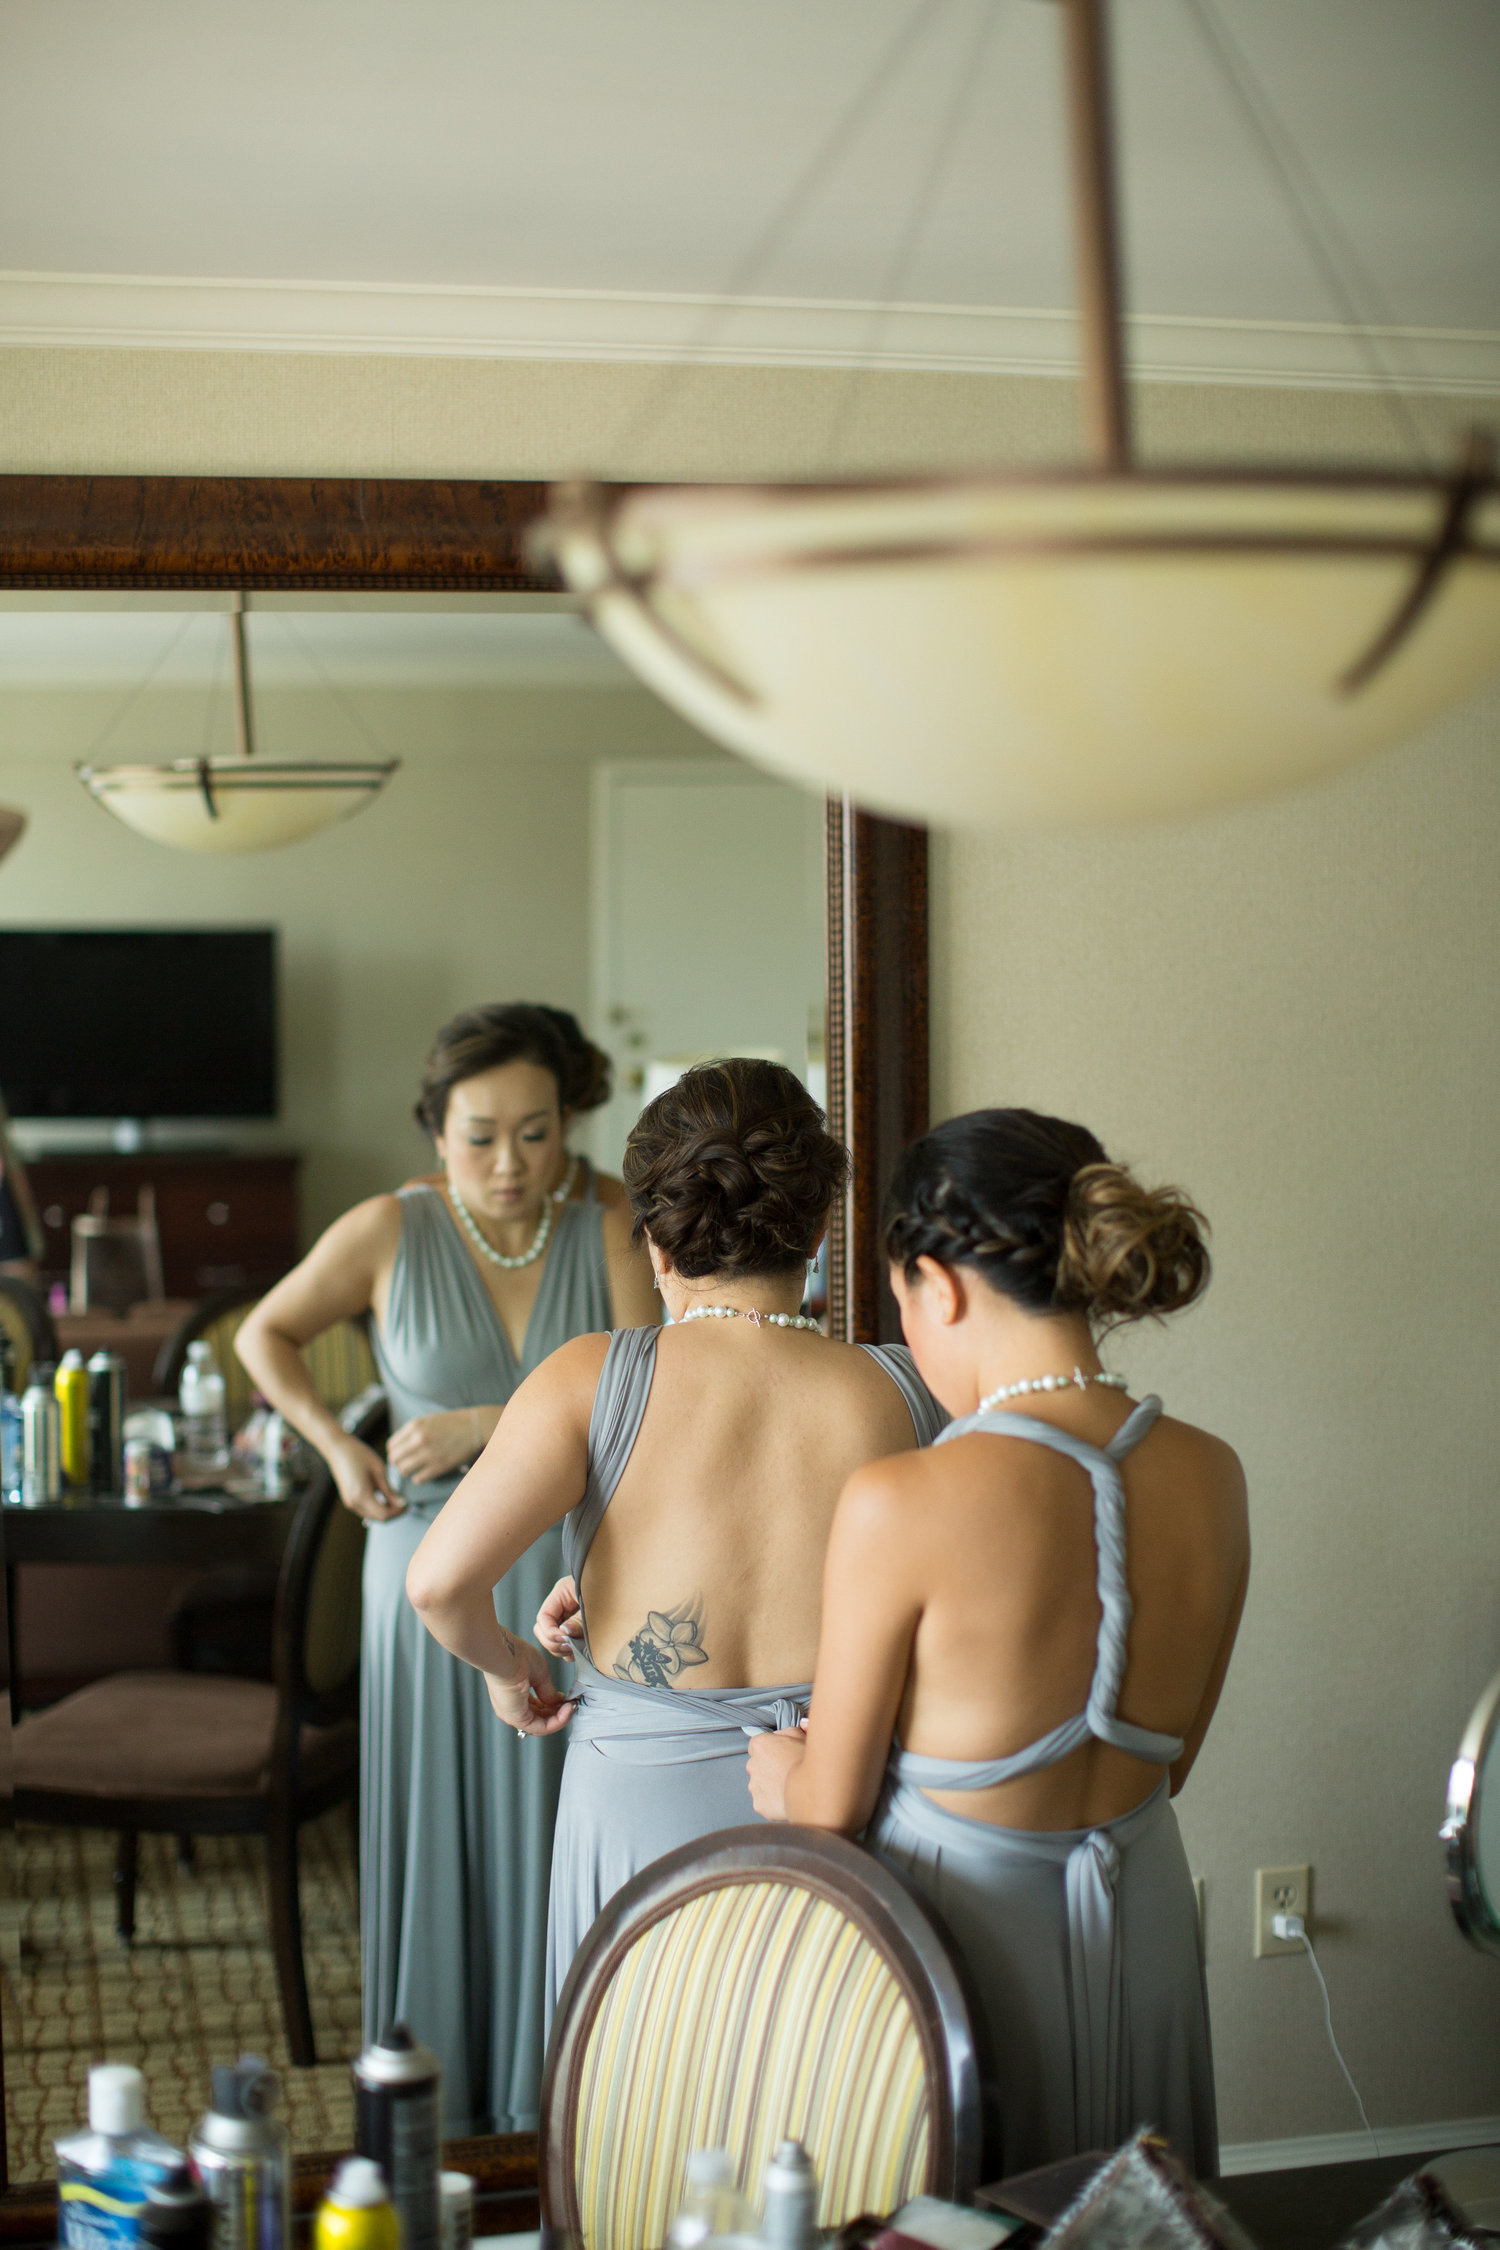 Tiff+Mark+Married-Getting+Ready-0162.jpg